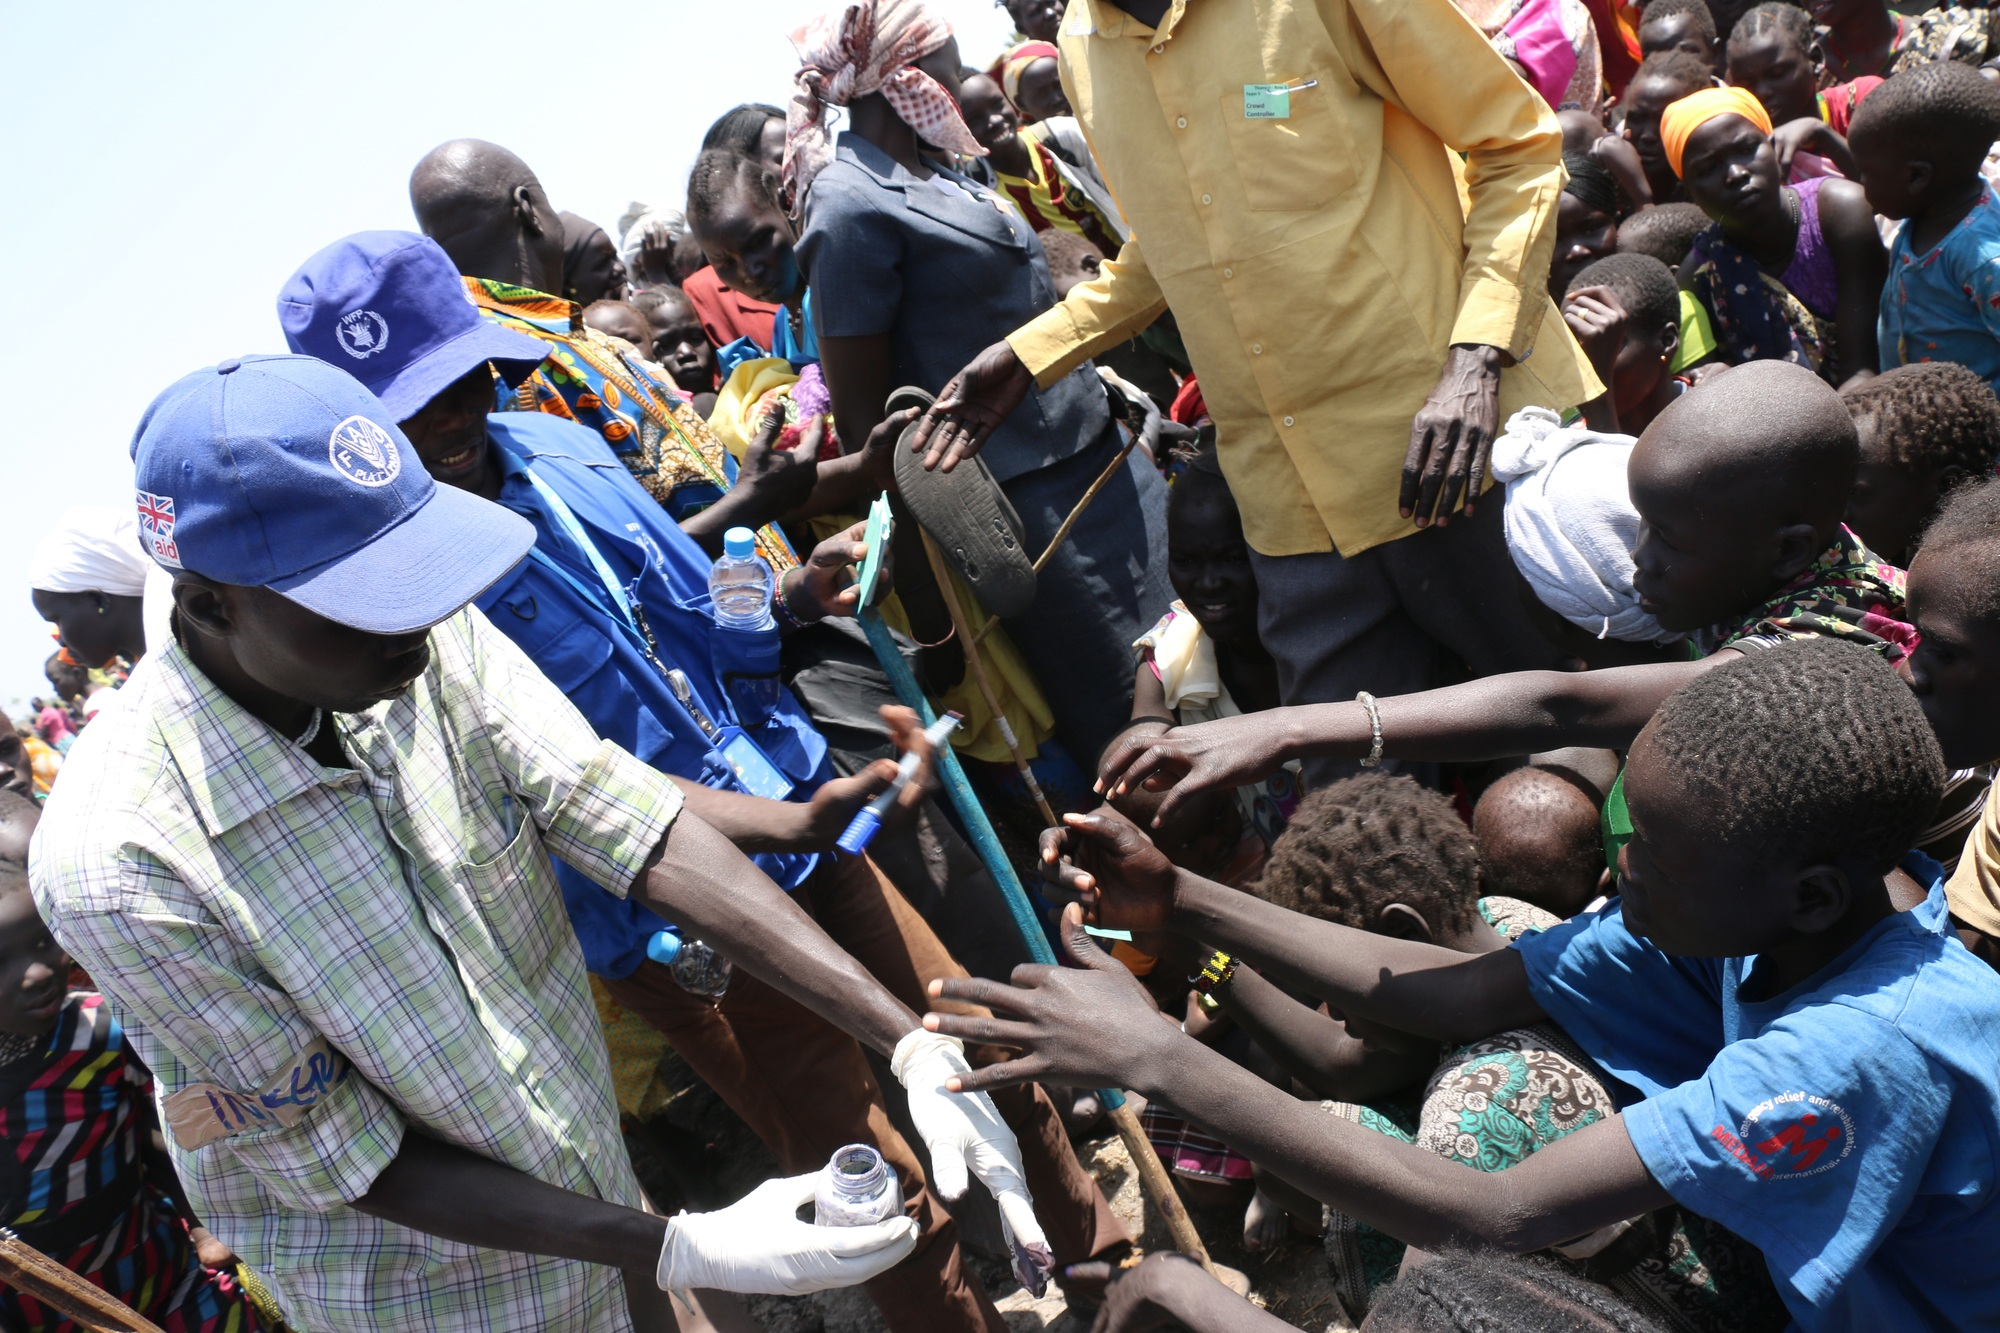 A WFP staffer is surrounded on all sides by people with children reaching out to him as he puts ink on their hands